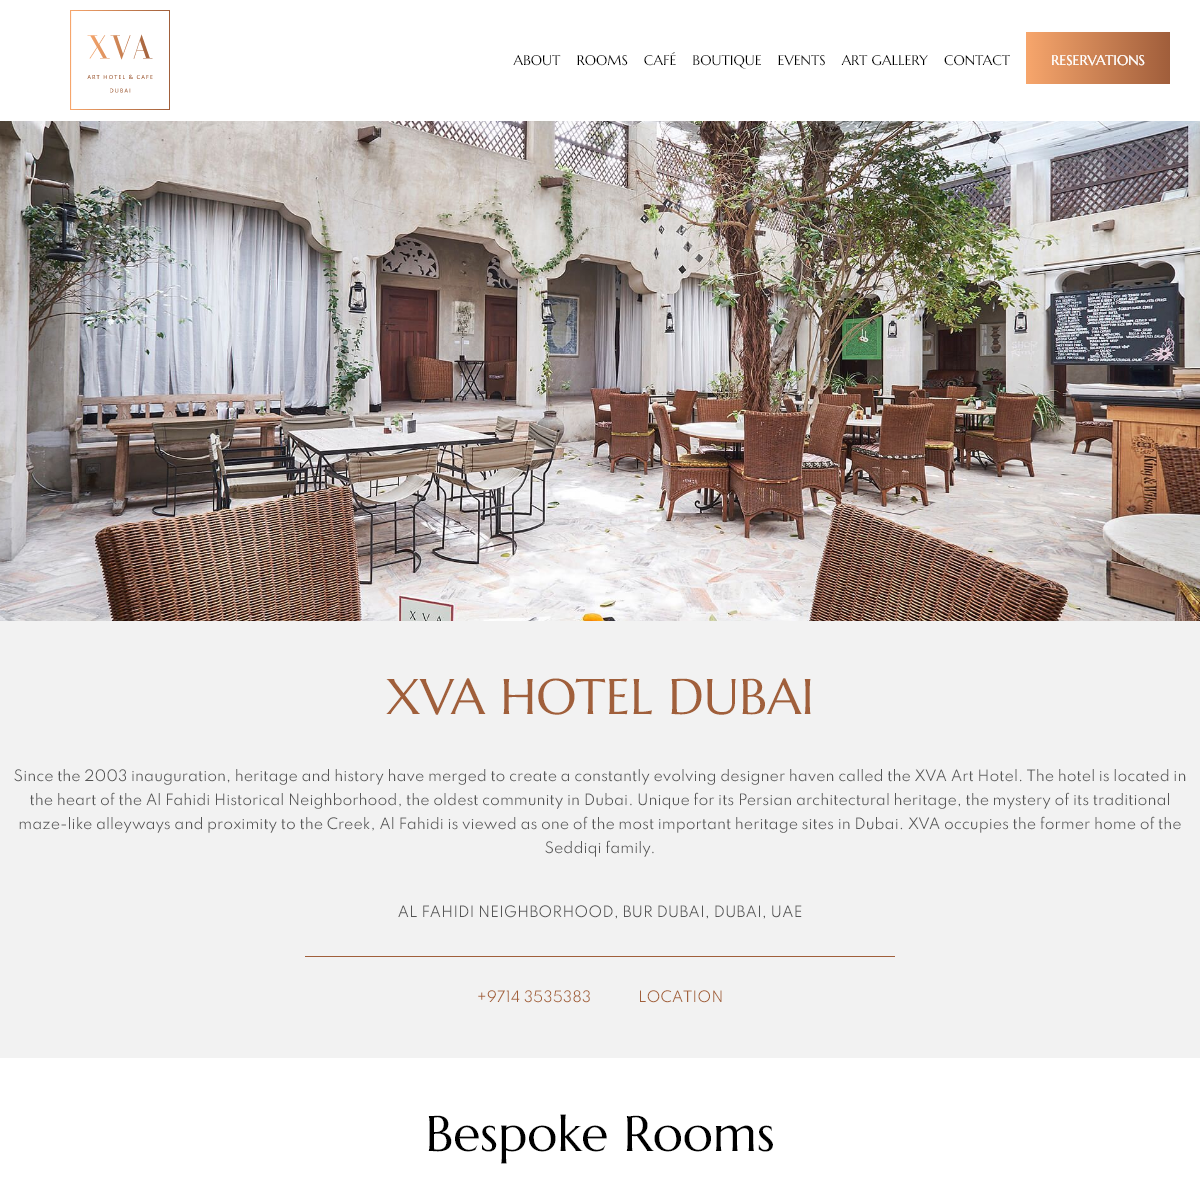 XVA Hotel Dubai - Offering 15 individually designed suites or rooms, an award winning restaurant, 3 wind towers, 2 courtyards, a